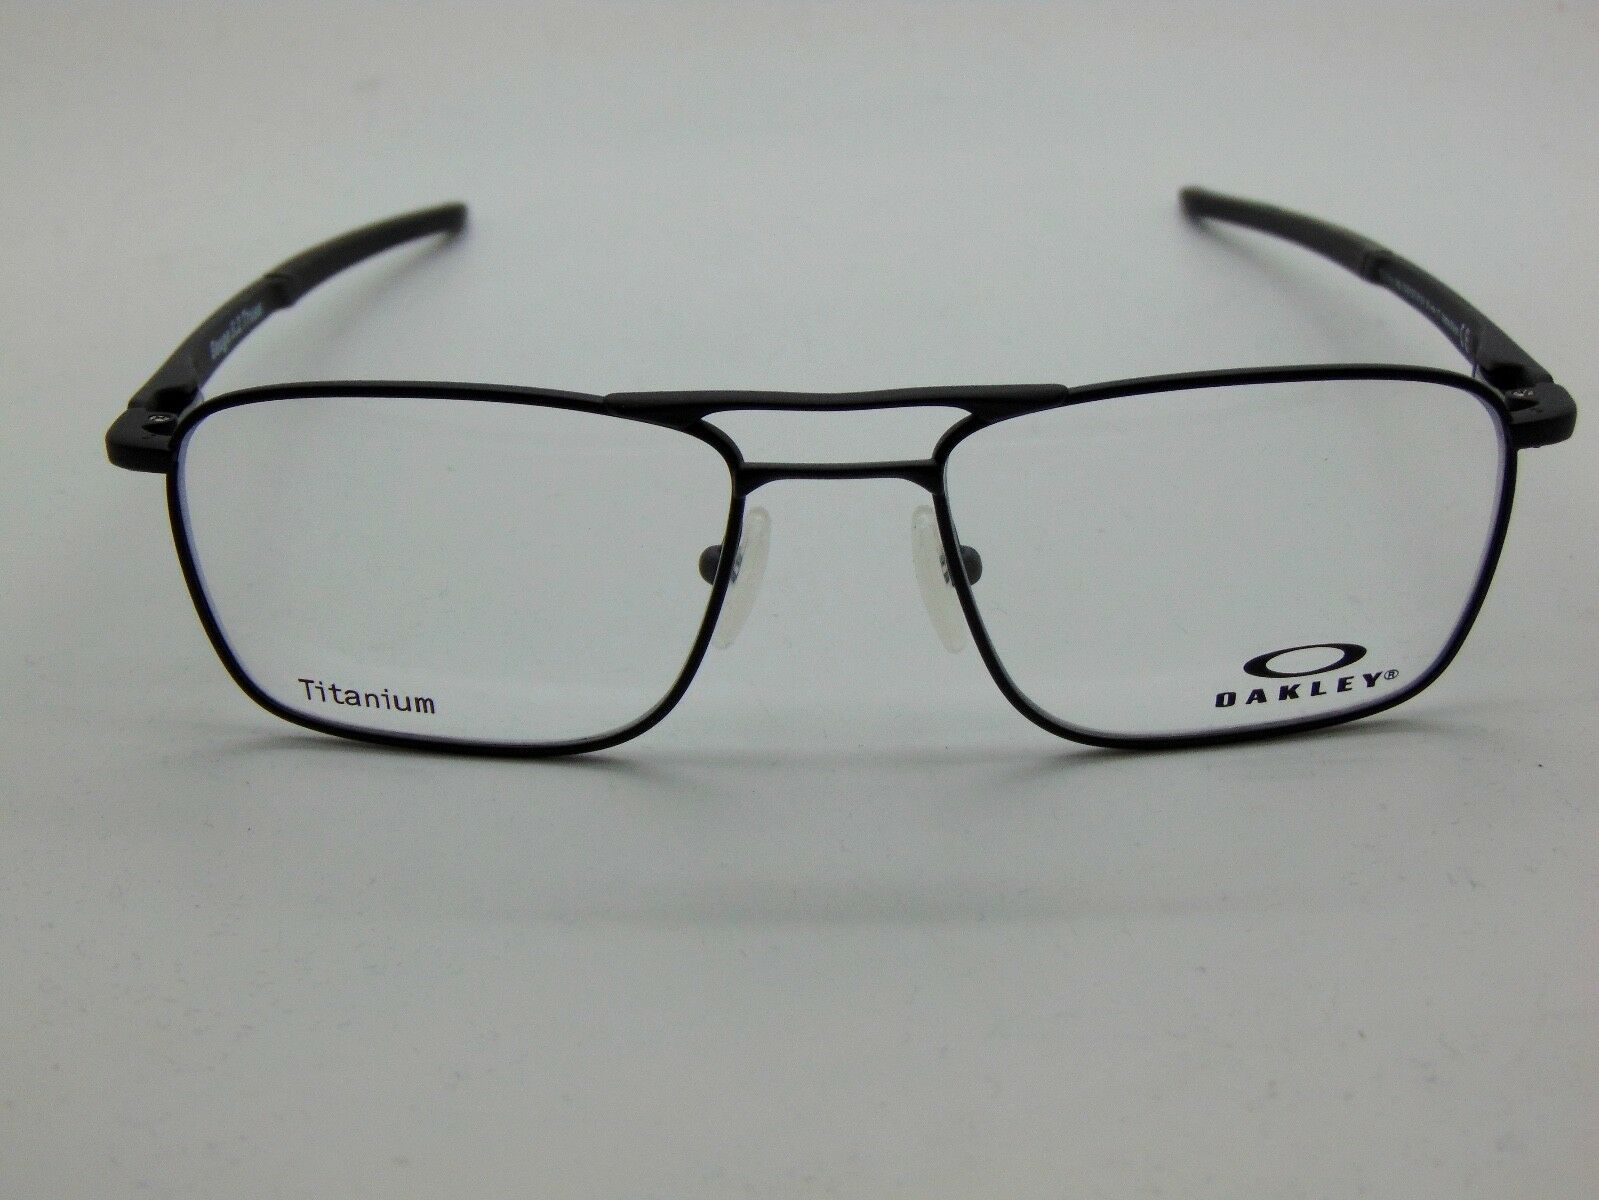 669cefcee5 UPC 700285467801 product image for Oakley Overlord Eyeglasses Rx Frame  Ox5067-0151 Titanium 51mm Glasses ...